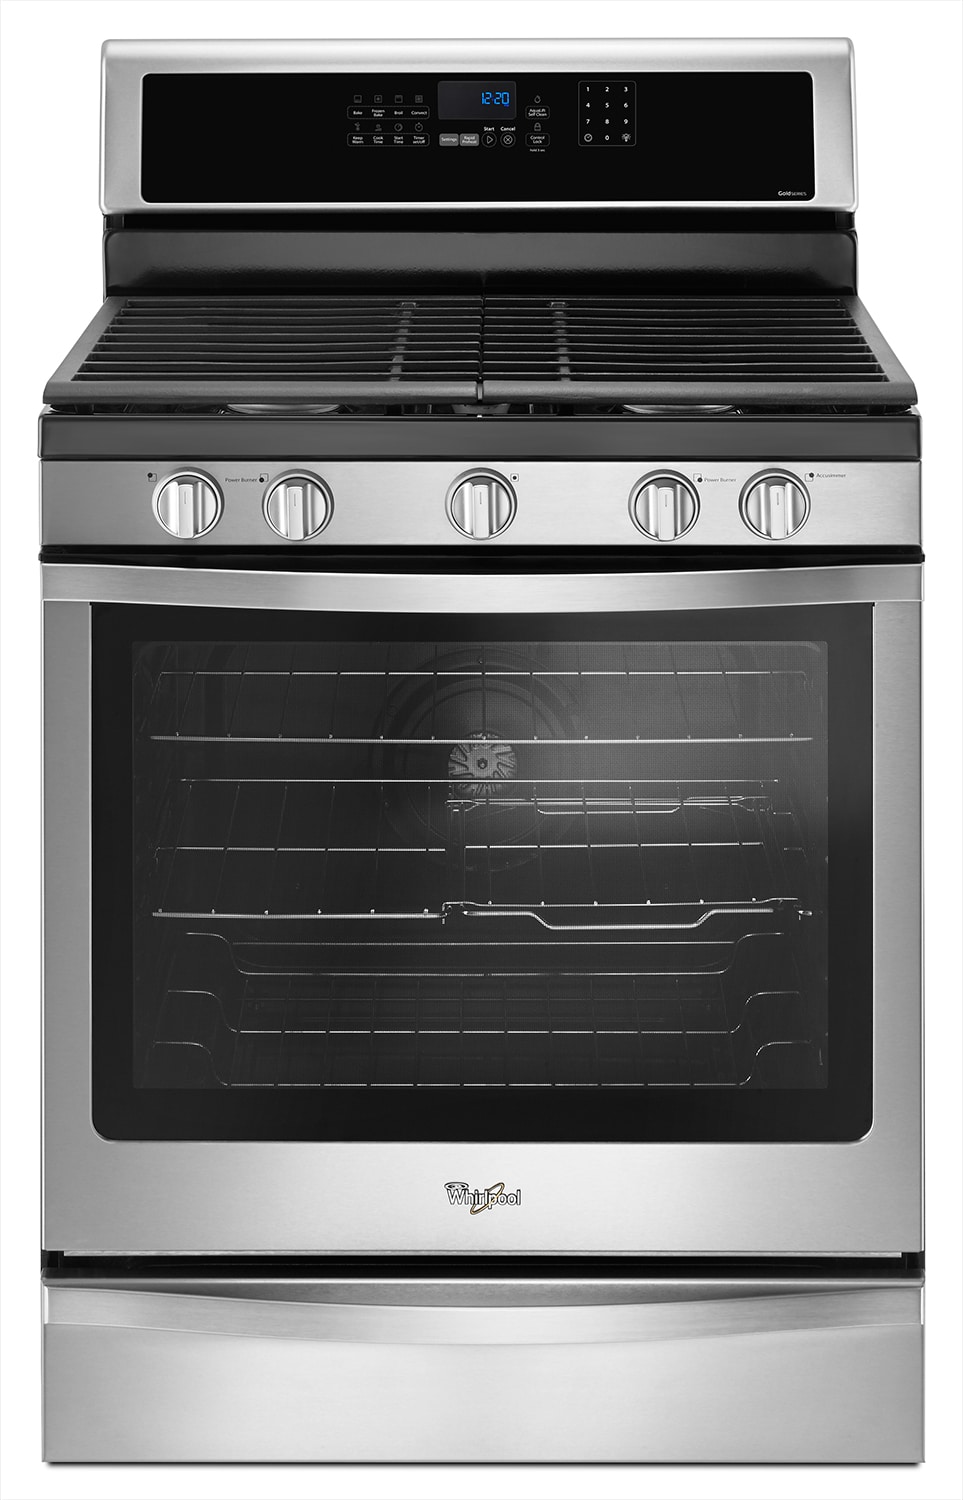 Whirlpool Stainless Steel Freestanding Gas Range (58 Cu. Free Download Kitchen Design. House Kitchen Interior Design Pictures. Design Of Kitchen Room. Different Types Of Kitchen Designs. Kitchens Designers. Small Kitchen Design Images. Kitchen Dining Room Designs. U Shaped Kitchen Design Layout